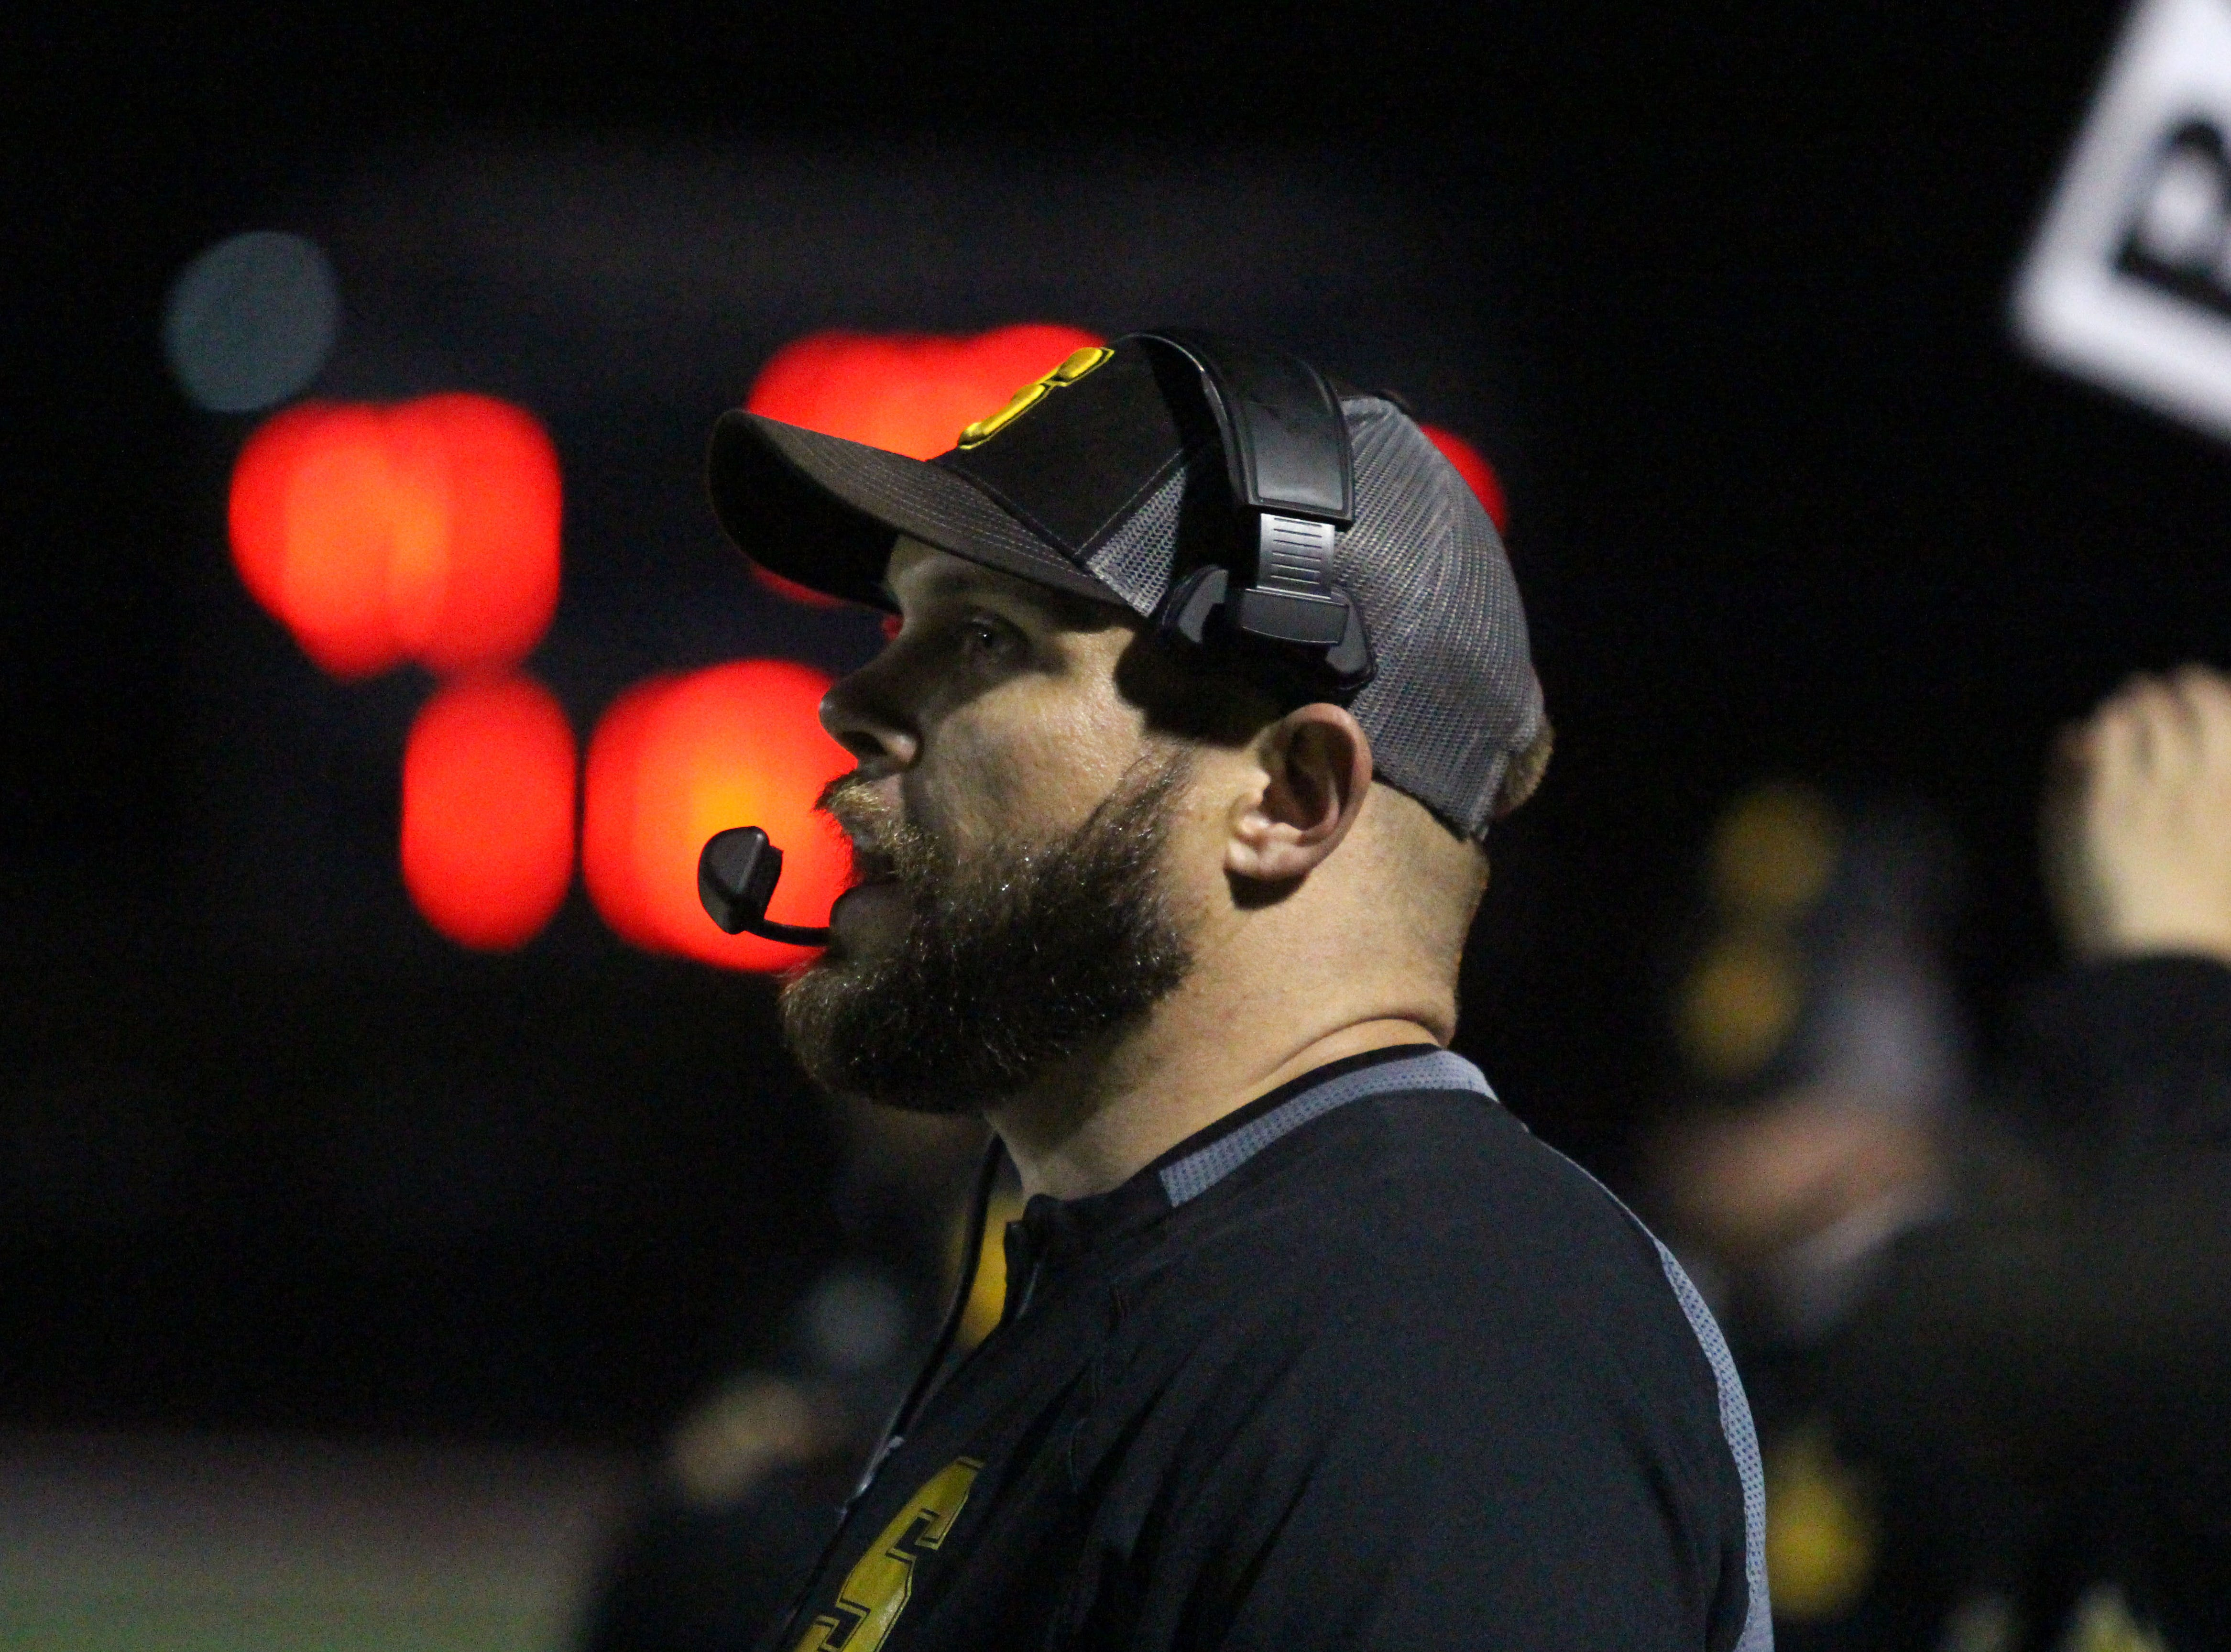 Saguaro coach Kyle caldwell looks towards the field during game against Desert Edge on Friday night at Coronado High School on Nov. 16, 2018.